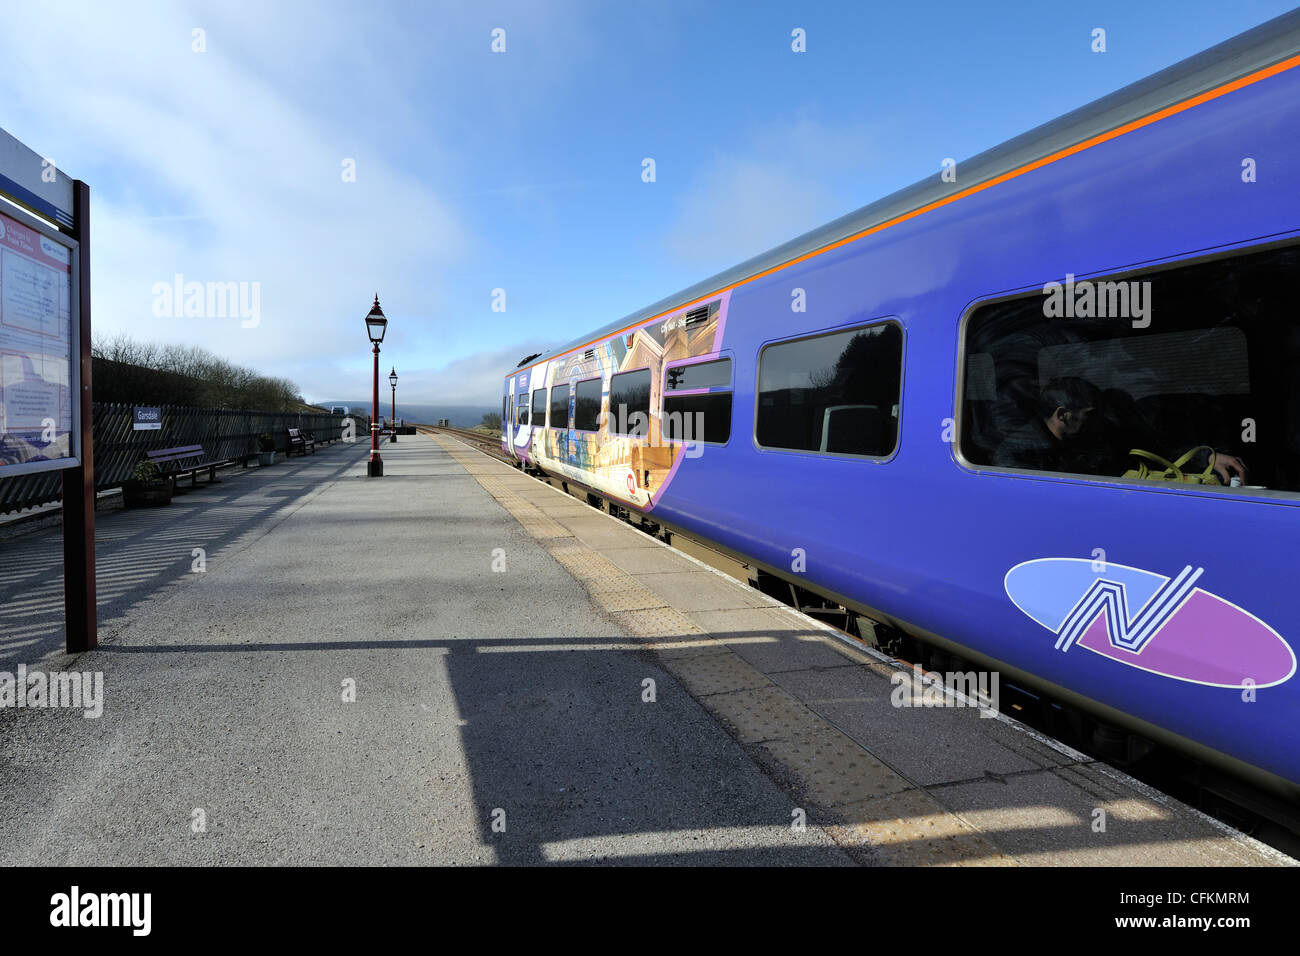 A Northern Rail train at Garsdale station, Carlisle to Settle railway line, Yorkshire Dales, England - Stock Image